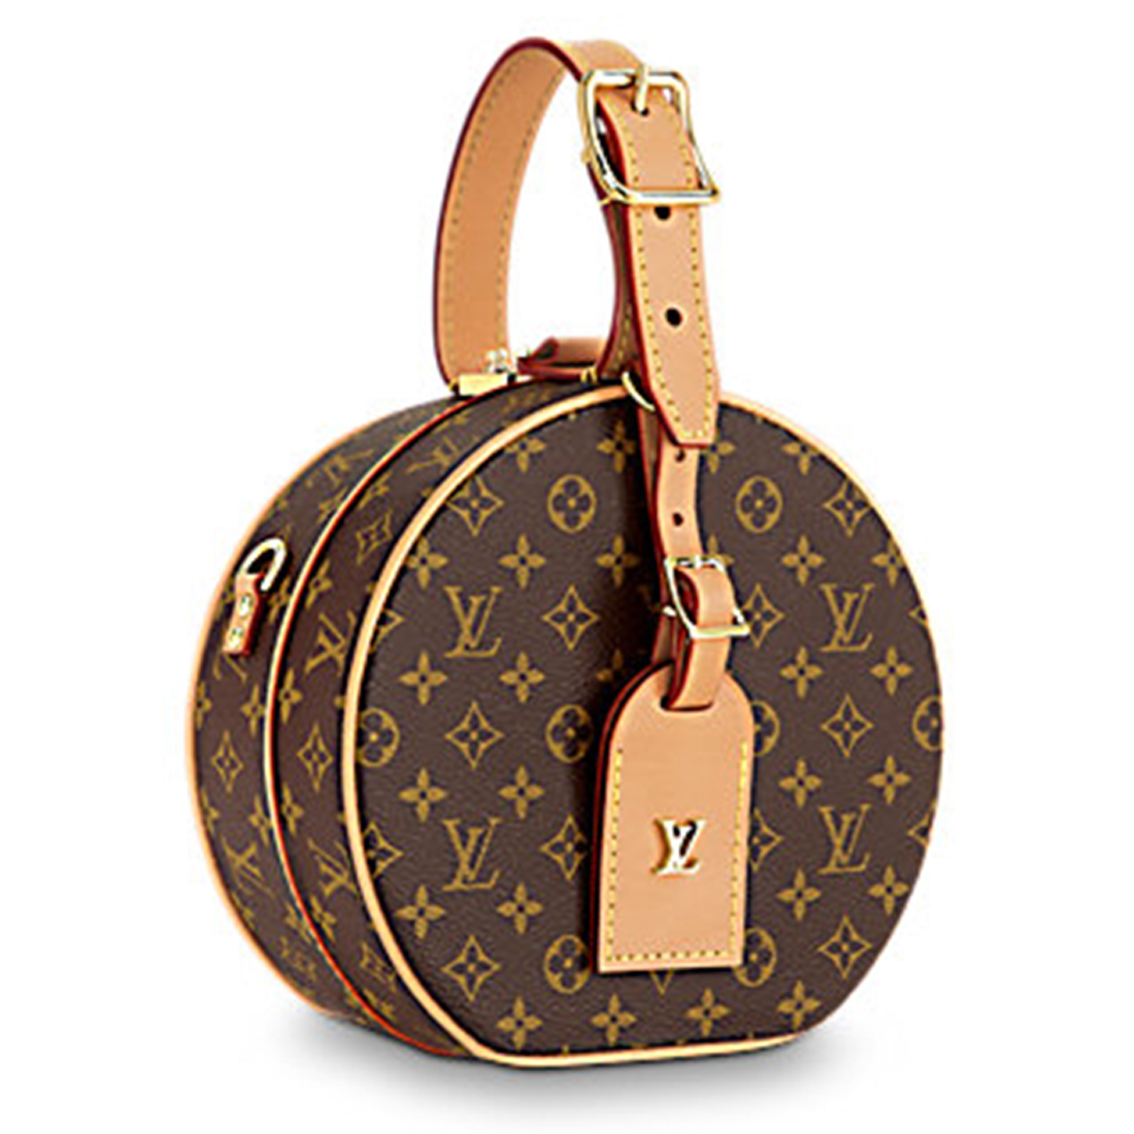 DROPONLY_0000s_0005_louis-vuitton-petite-boite-chapeau-monogram-canvas-handbags--M43514_PM2_Front vi.jpg